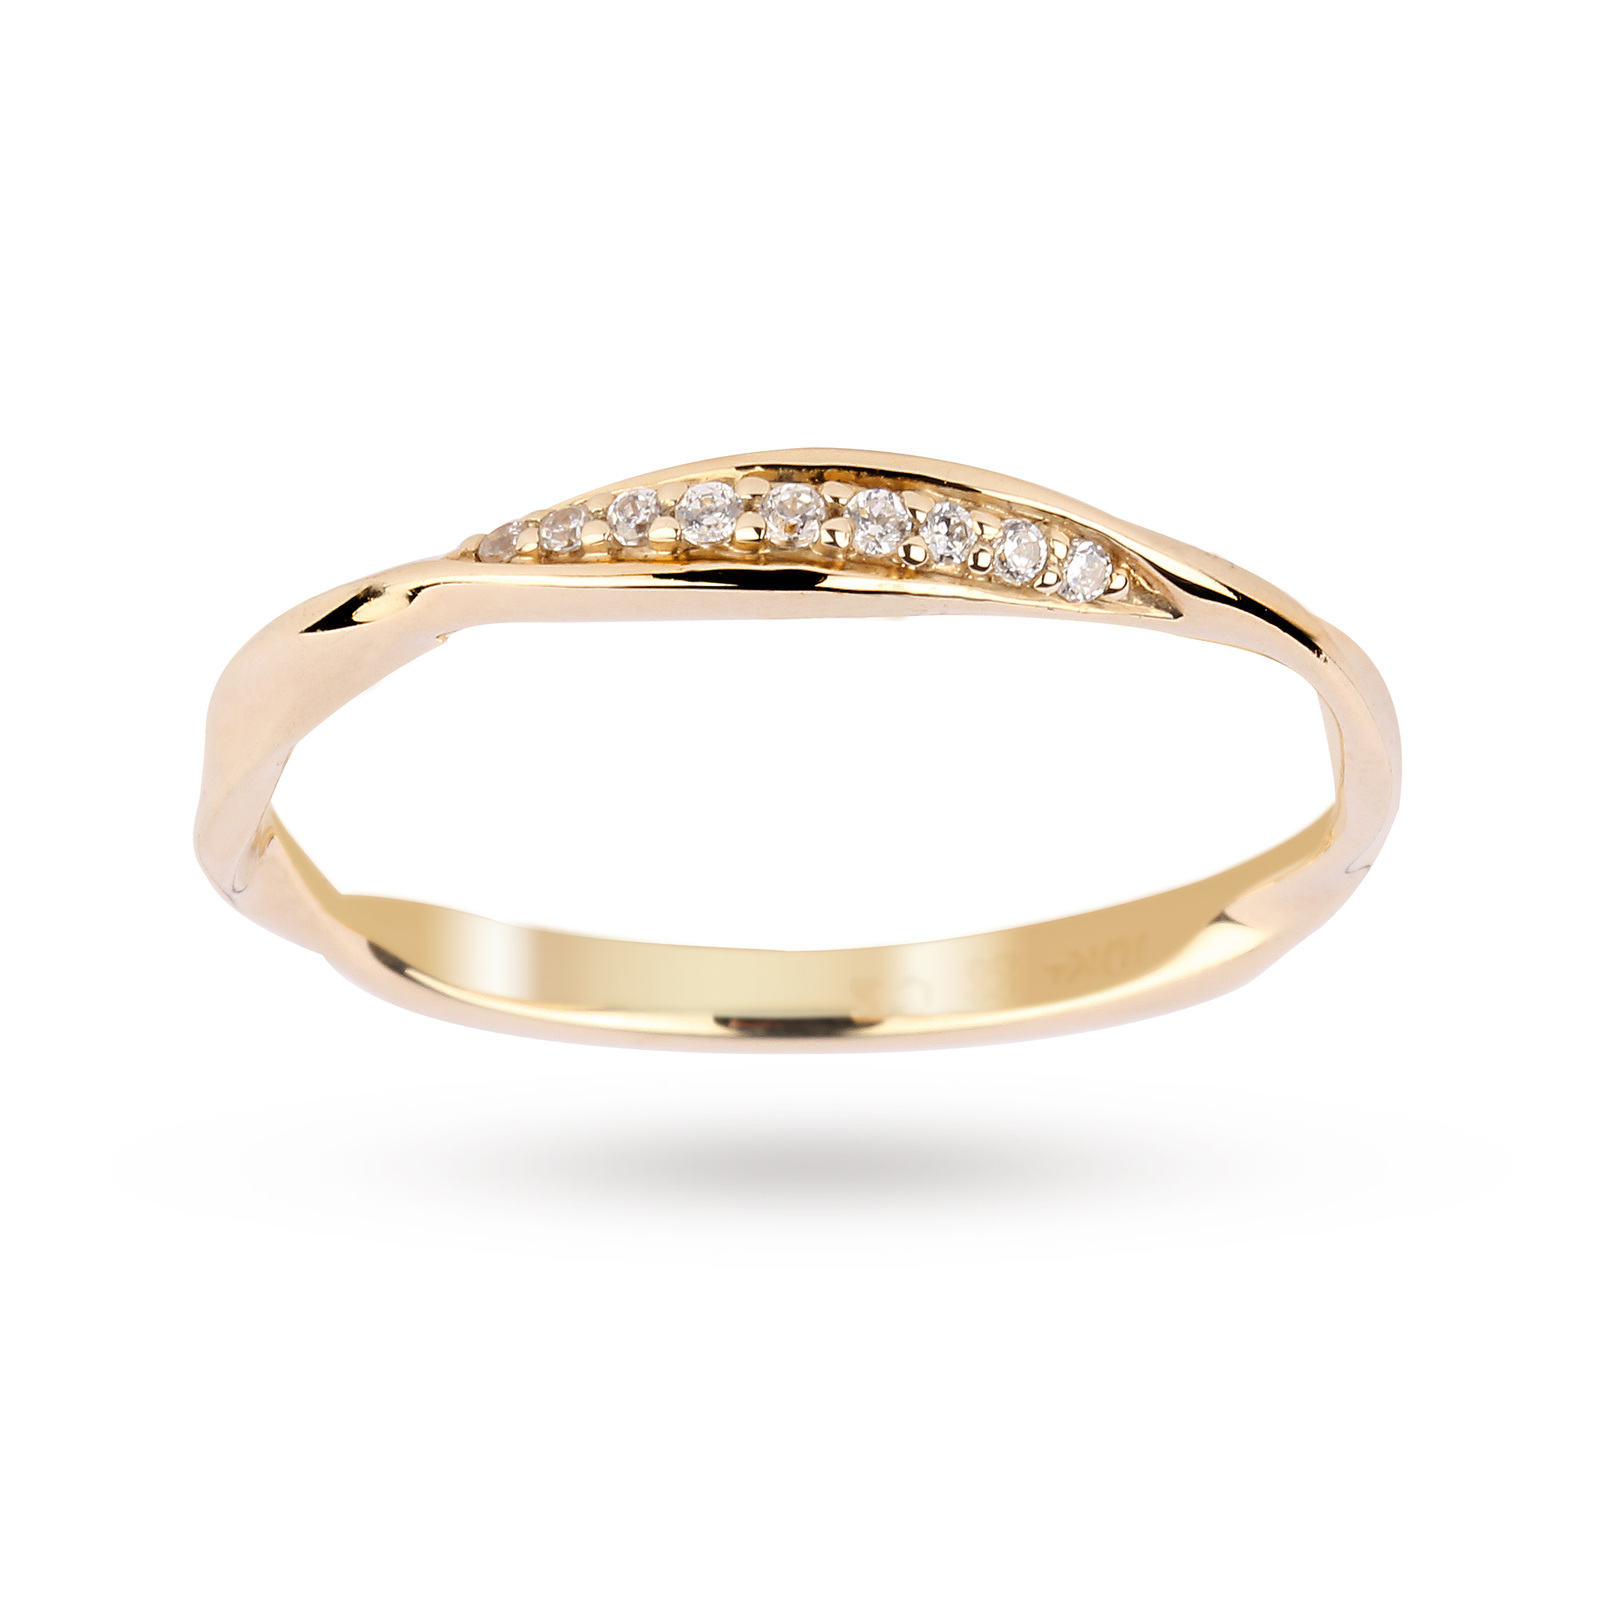 Brilliant Cut Diamond Ring in 9 Carat Yellow Gold